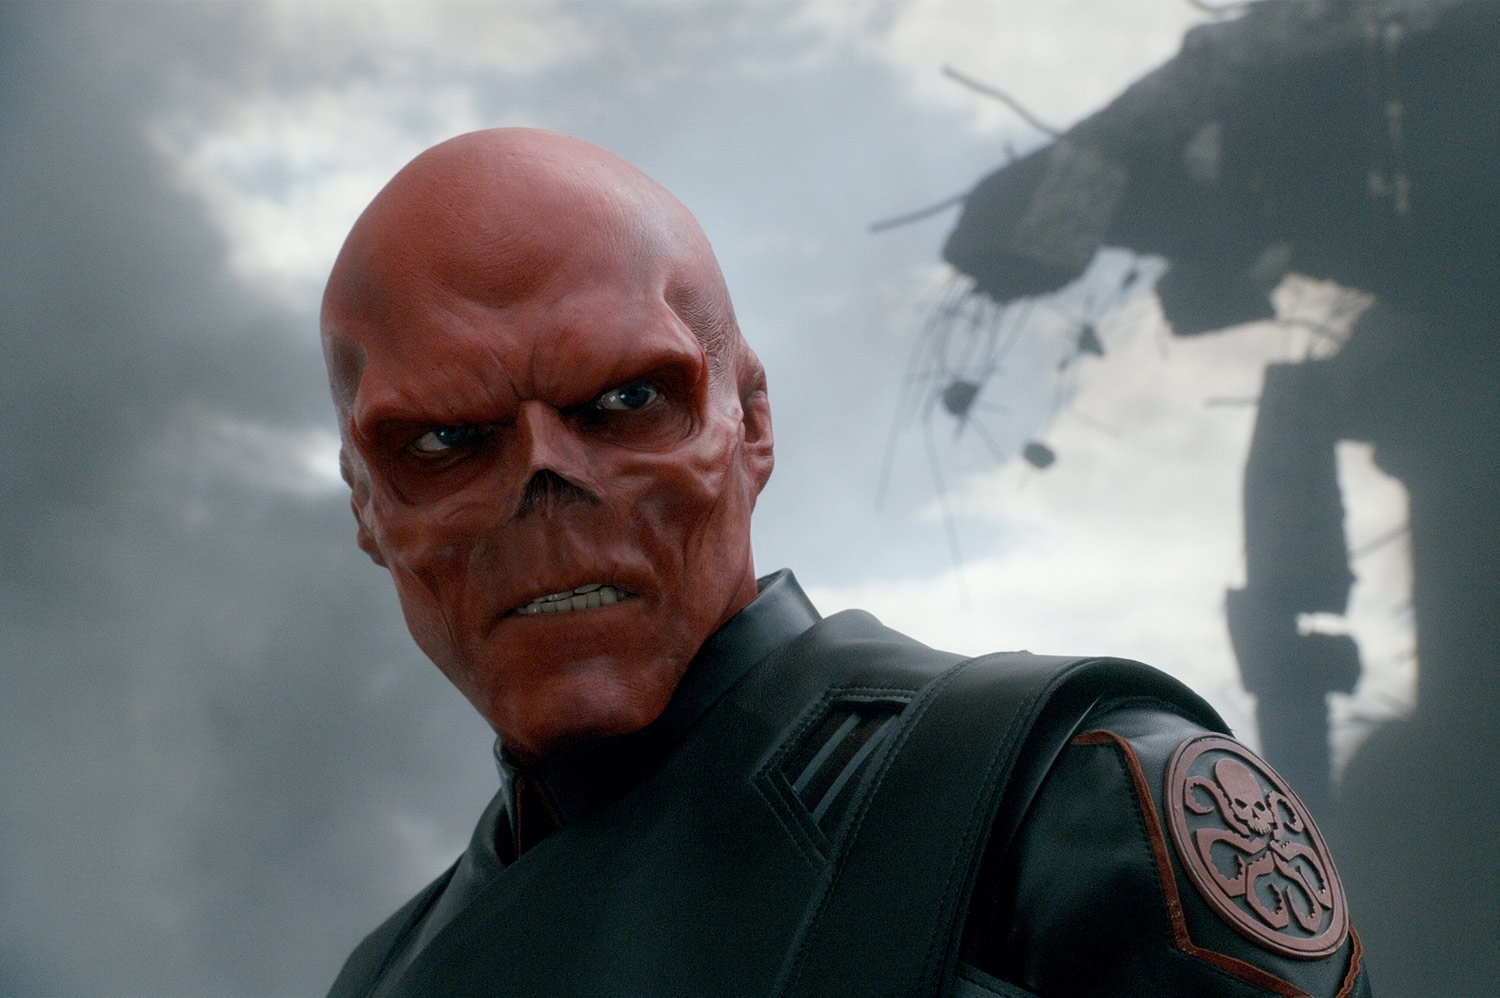 Red Skull in Captain America: The FirstAvenger